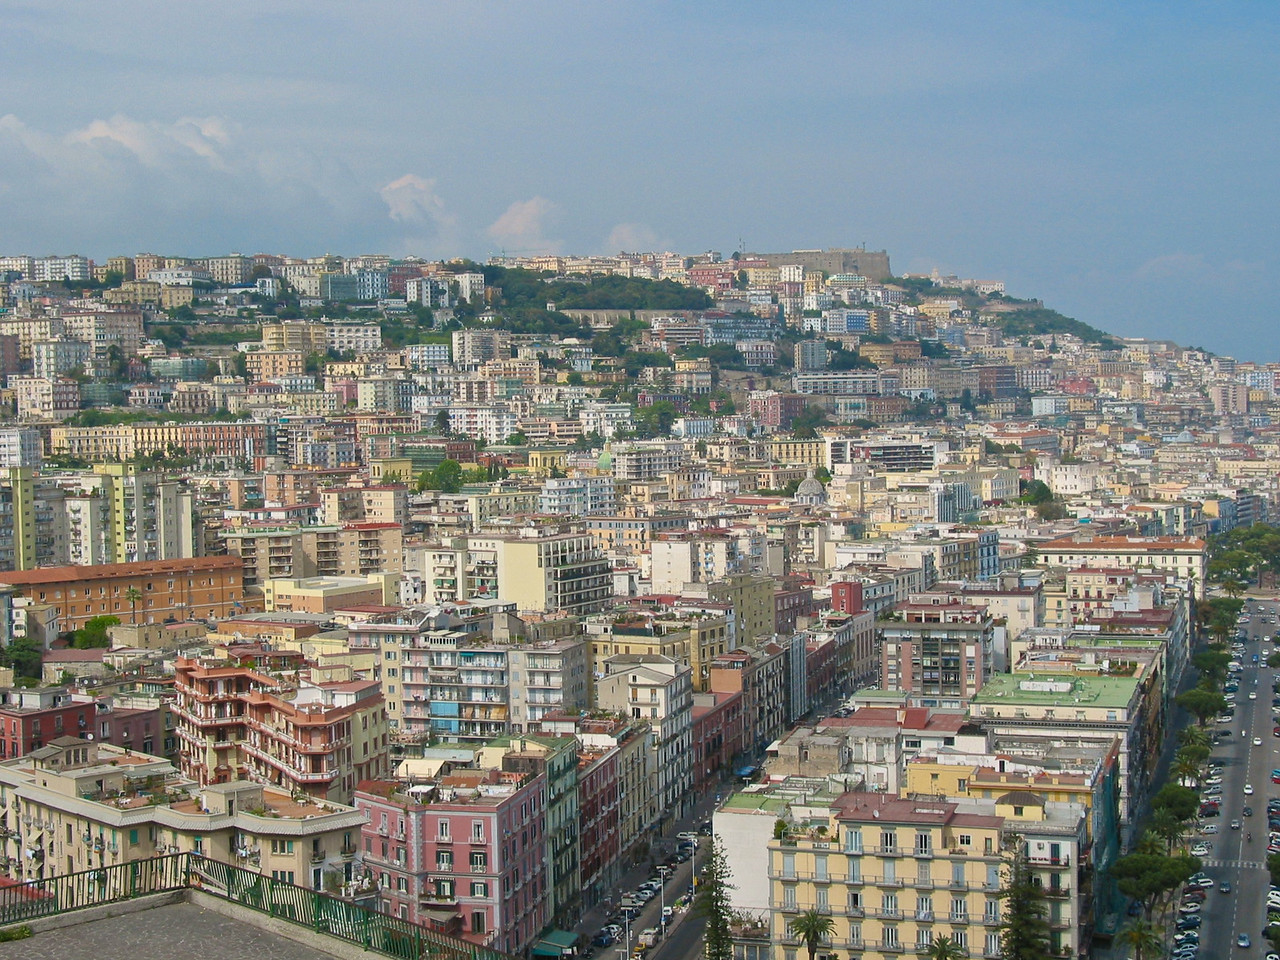 The Naples urban area is the 8th-most populous urban area in the European Union. Between 4.1 and 4.9 million people live in the Naples metropolitan area, one of the largest metropolises on the Mediterranean Sea.<br /> Naples is one of the oldest continuously-inhabited cities in the world. Bronze Age Greek settlements were established on the site in the 2nd millennium BC,with a larger mainland colony – initially known as Parthenope – developing around the 9th–8th centuries BC, at the end of the Greek Dark Ages.